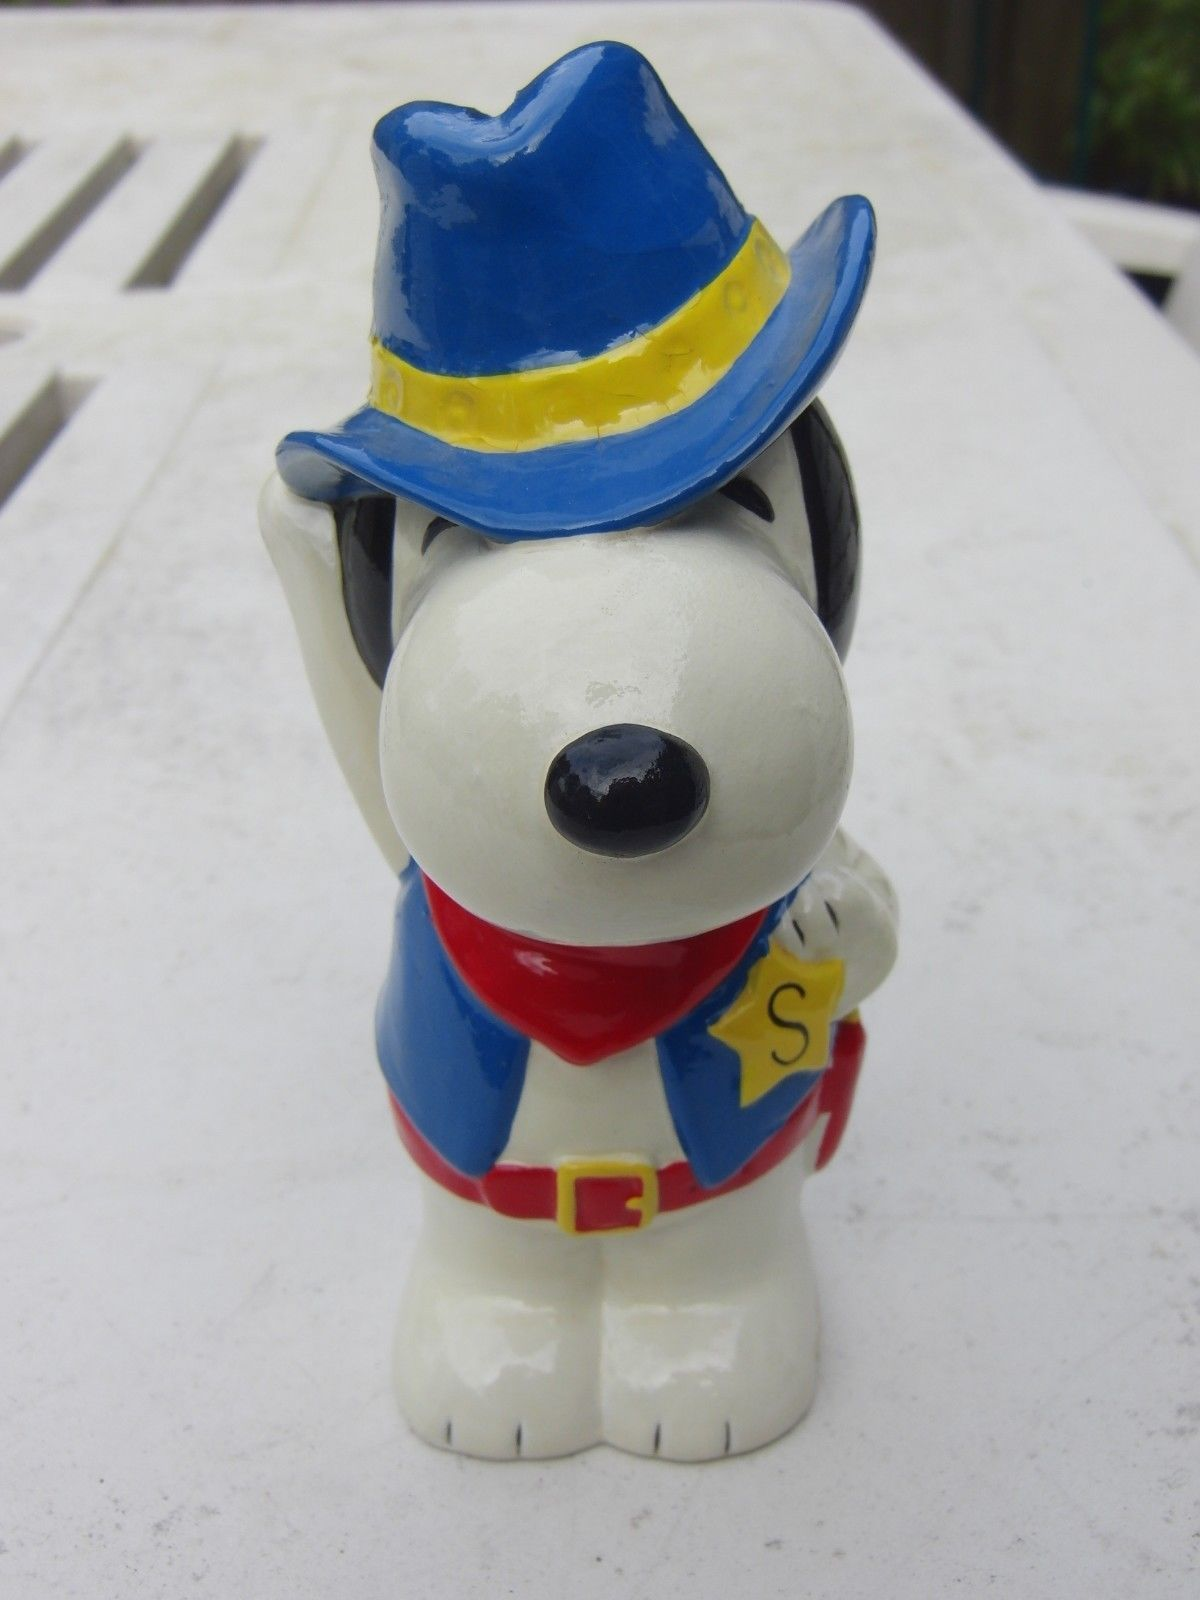 Snoopy Peanuts Sheriff Coin Bank Rare Vintage 60 S Papier Mache Snoopy Coin Bank Penny Bank